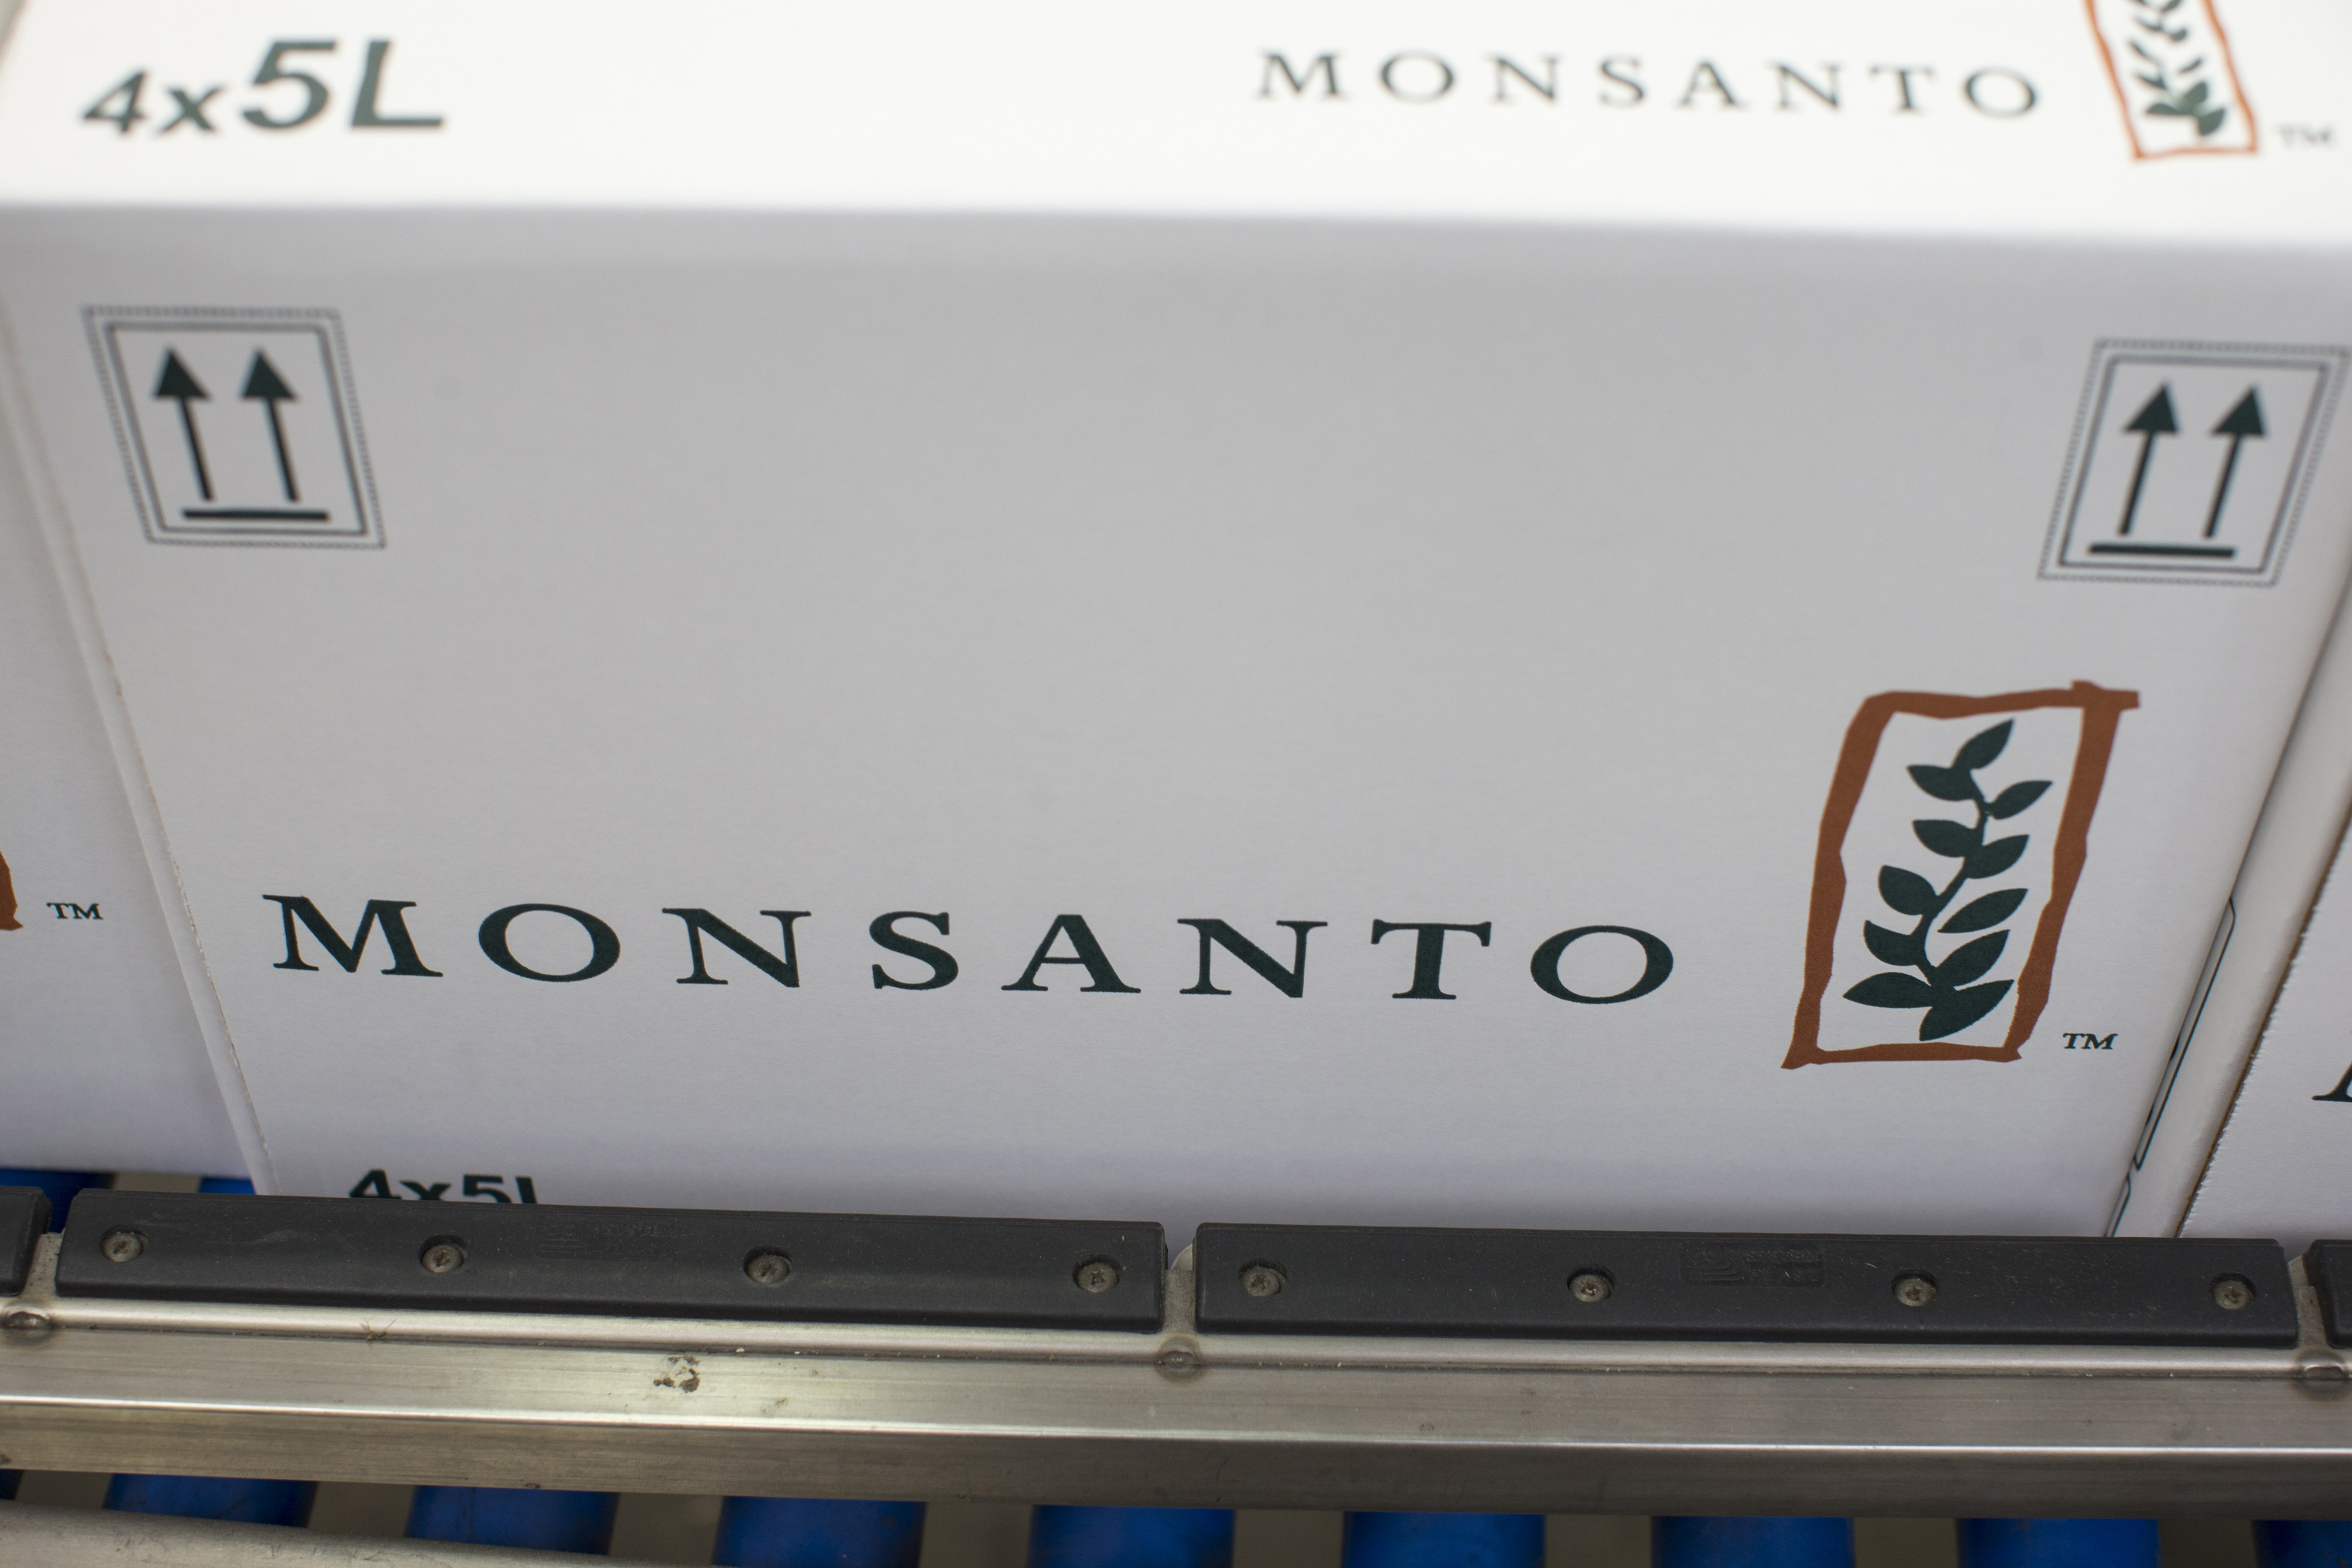 Roundup Herbicide Production And Shipping Operations At A Monsanto Co. Facility As Bayer AG Continue Acquisition Quest